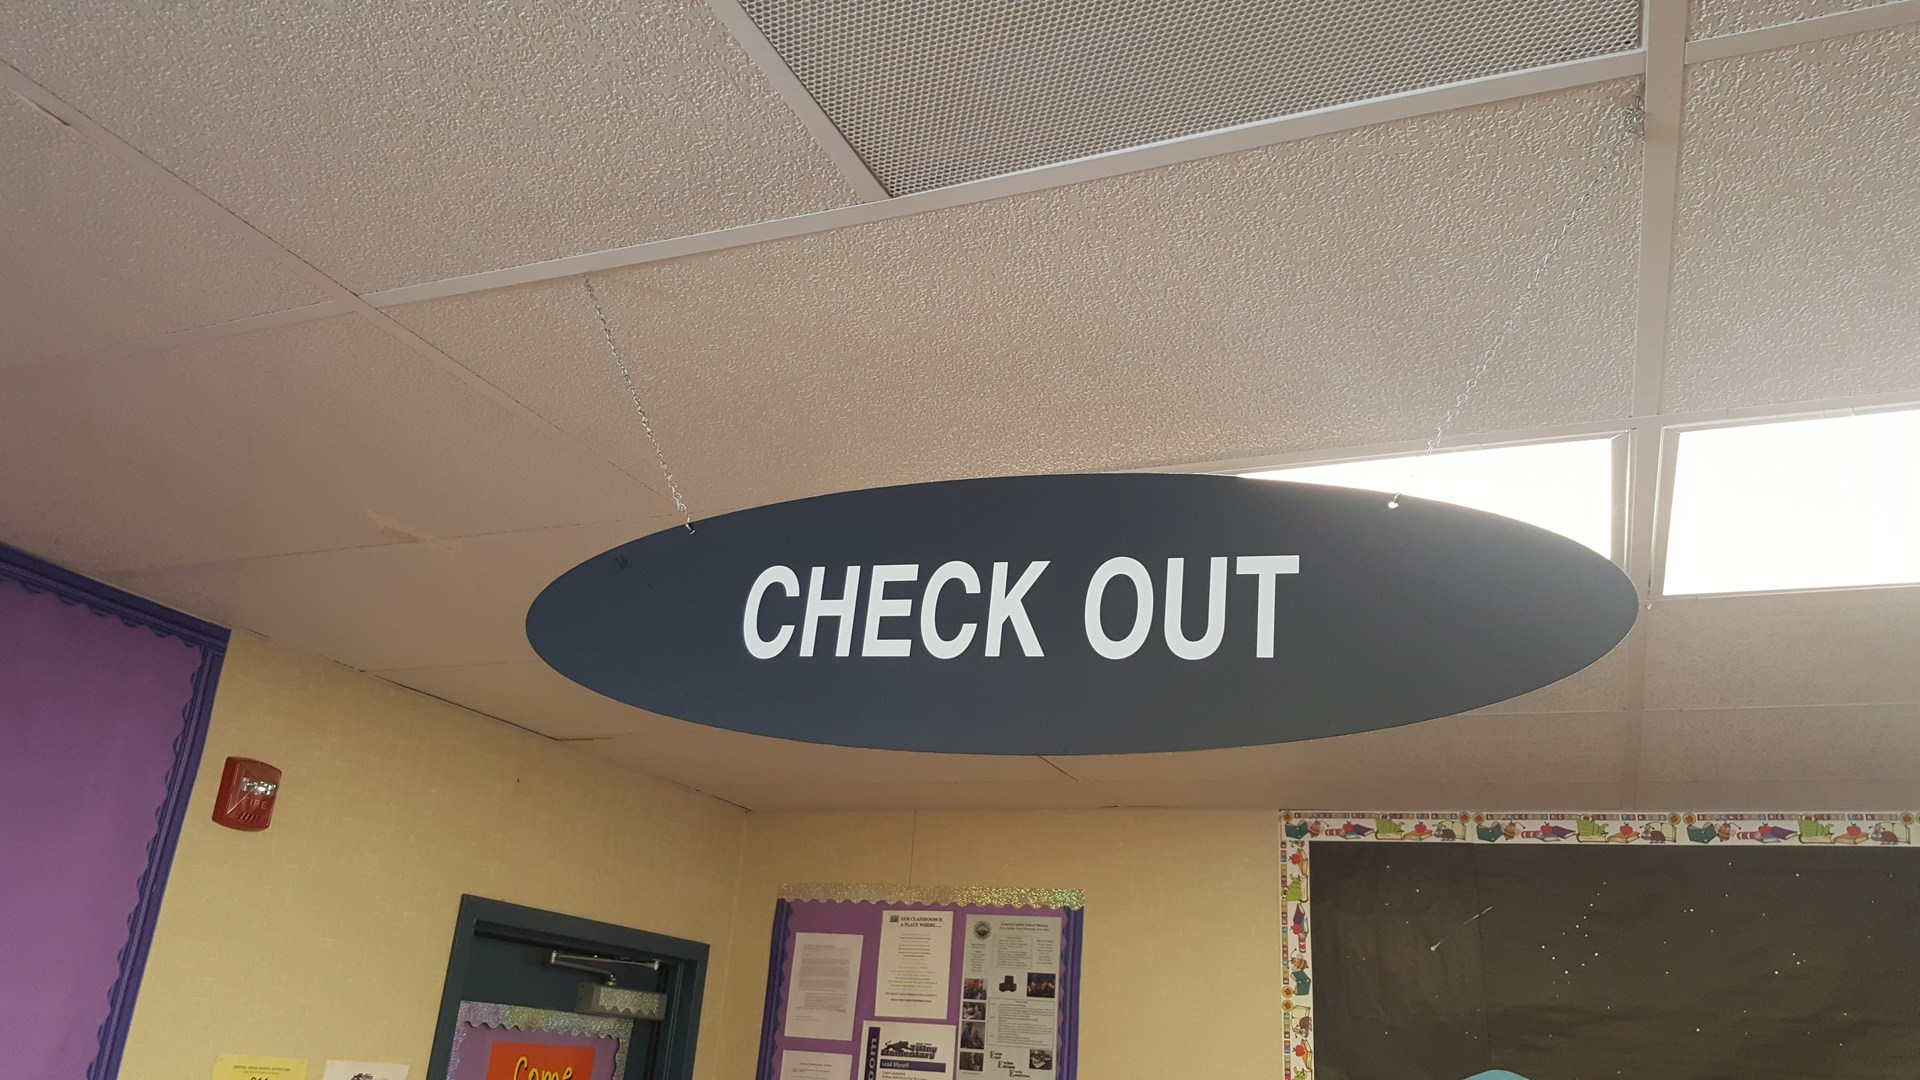 Library checkout sign